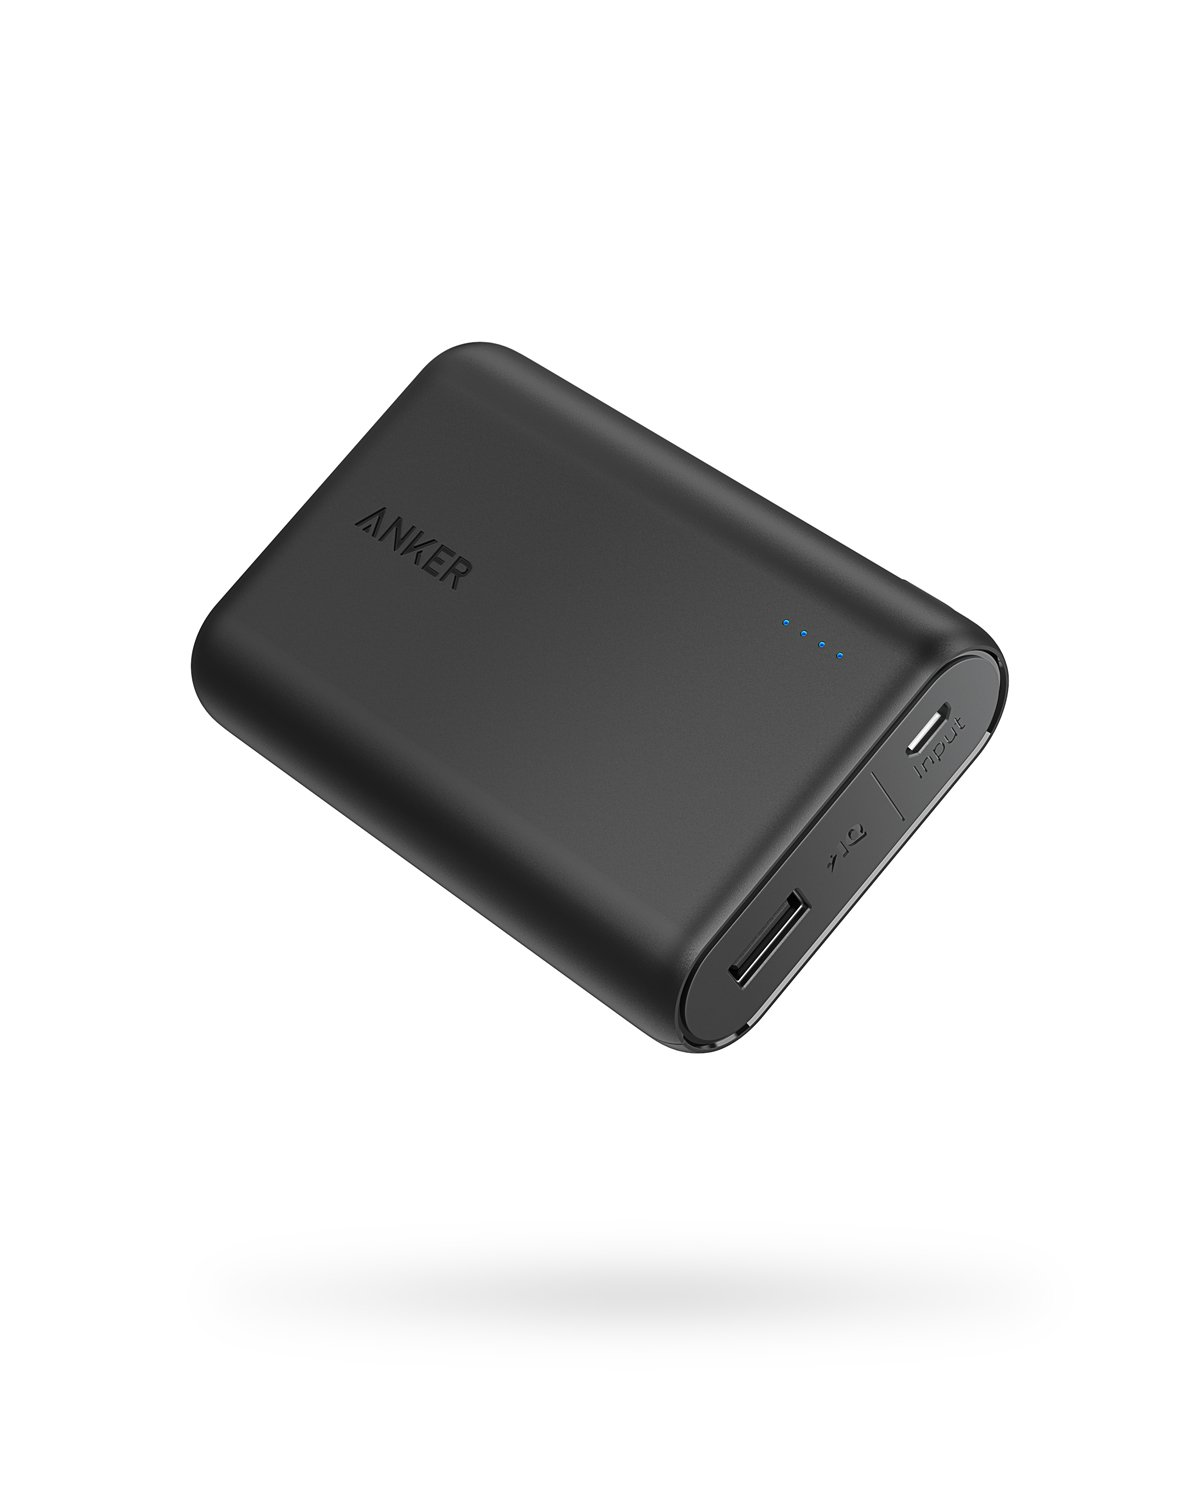 Anker PowerCore 10000 Portable Charger, One Of The Smallest And Lightest 10000mAh External Battery, Ultra-Compact